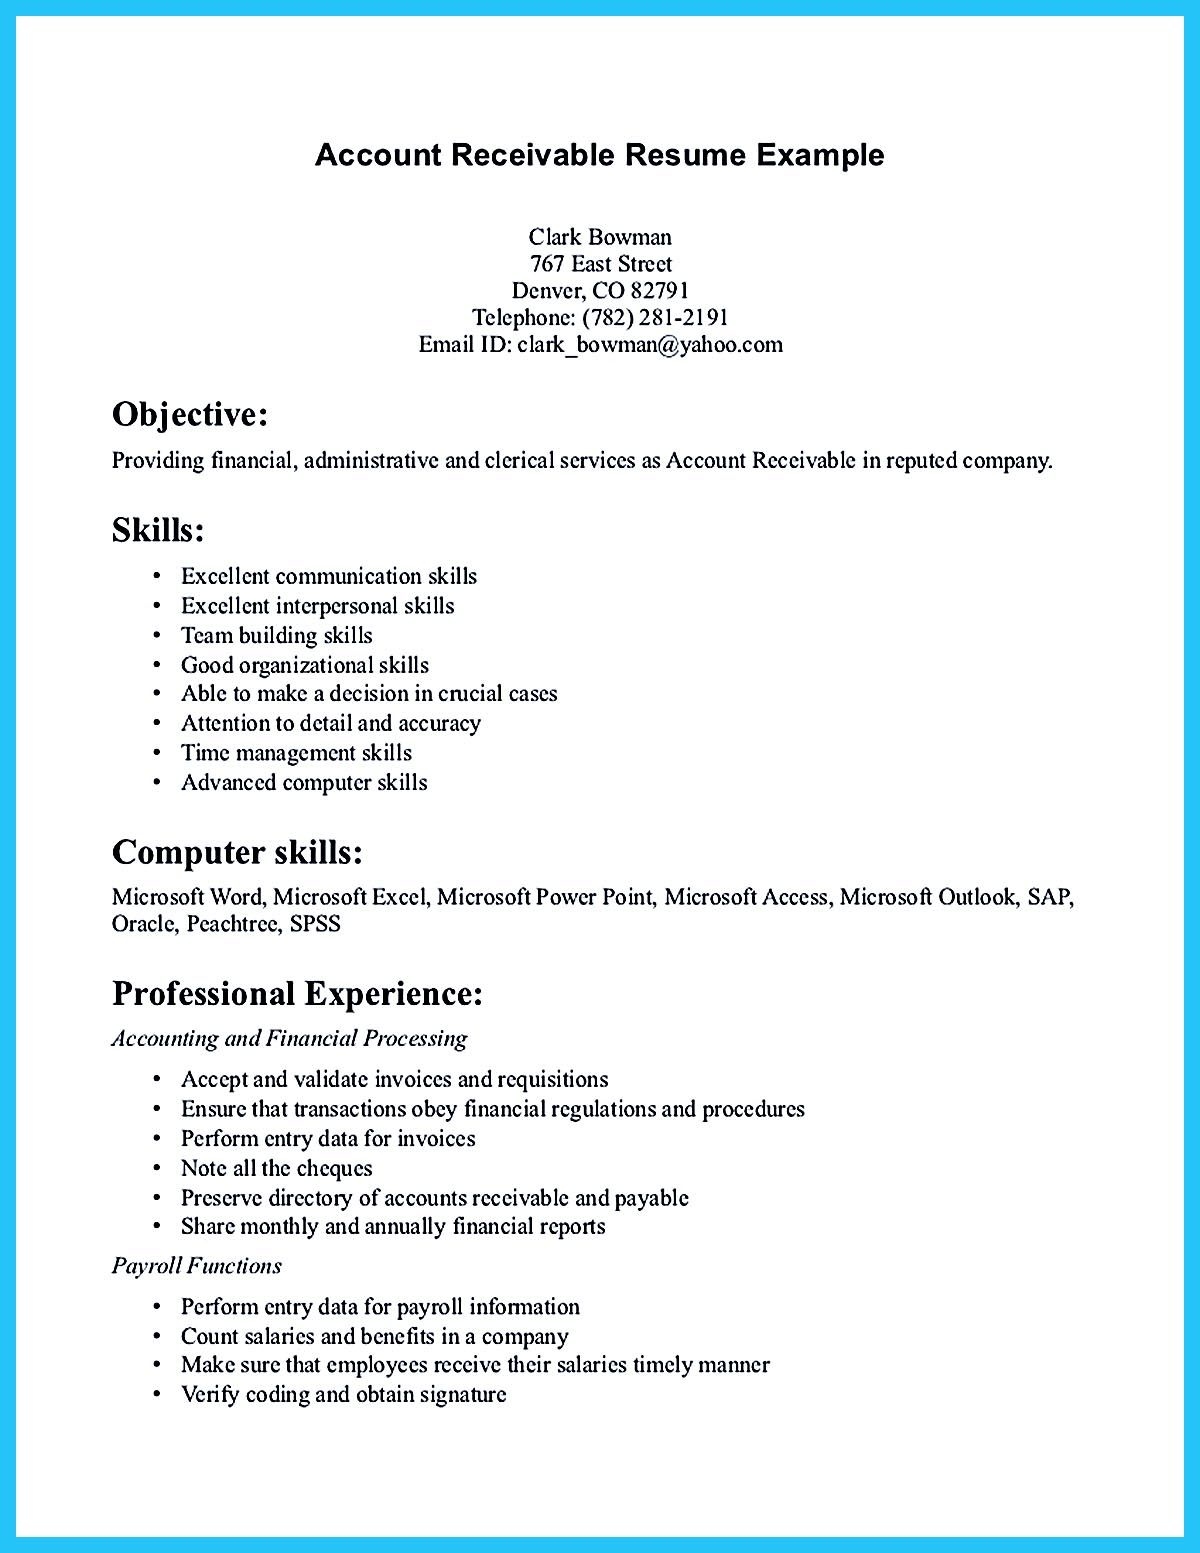 Accounts Receivable Resume Accounts Receivable Resume Presents Both Skills And Also The